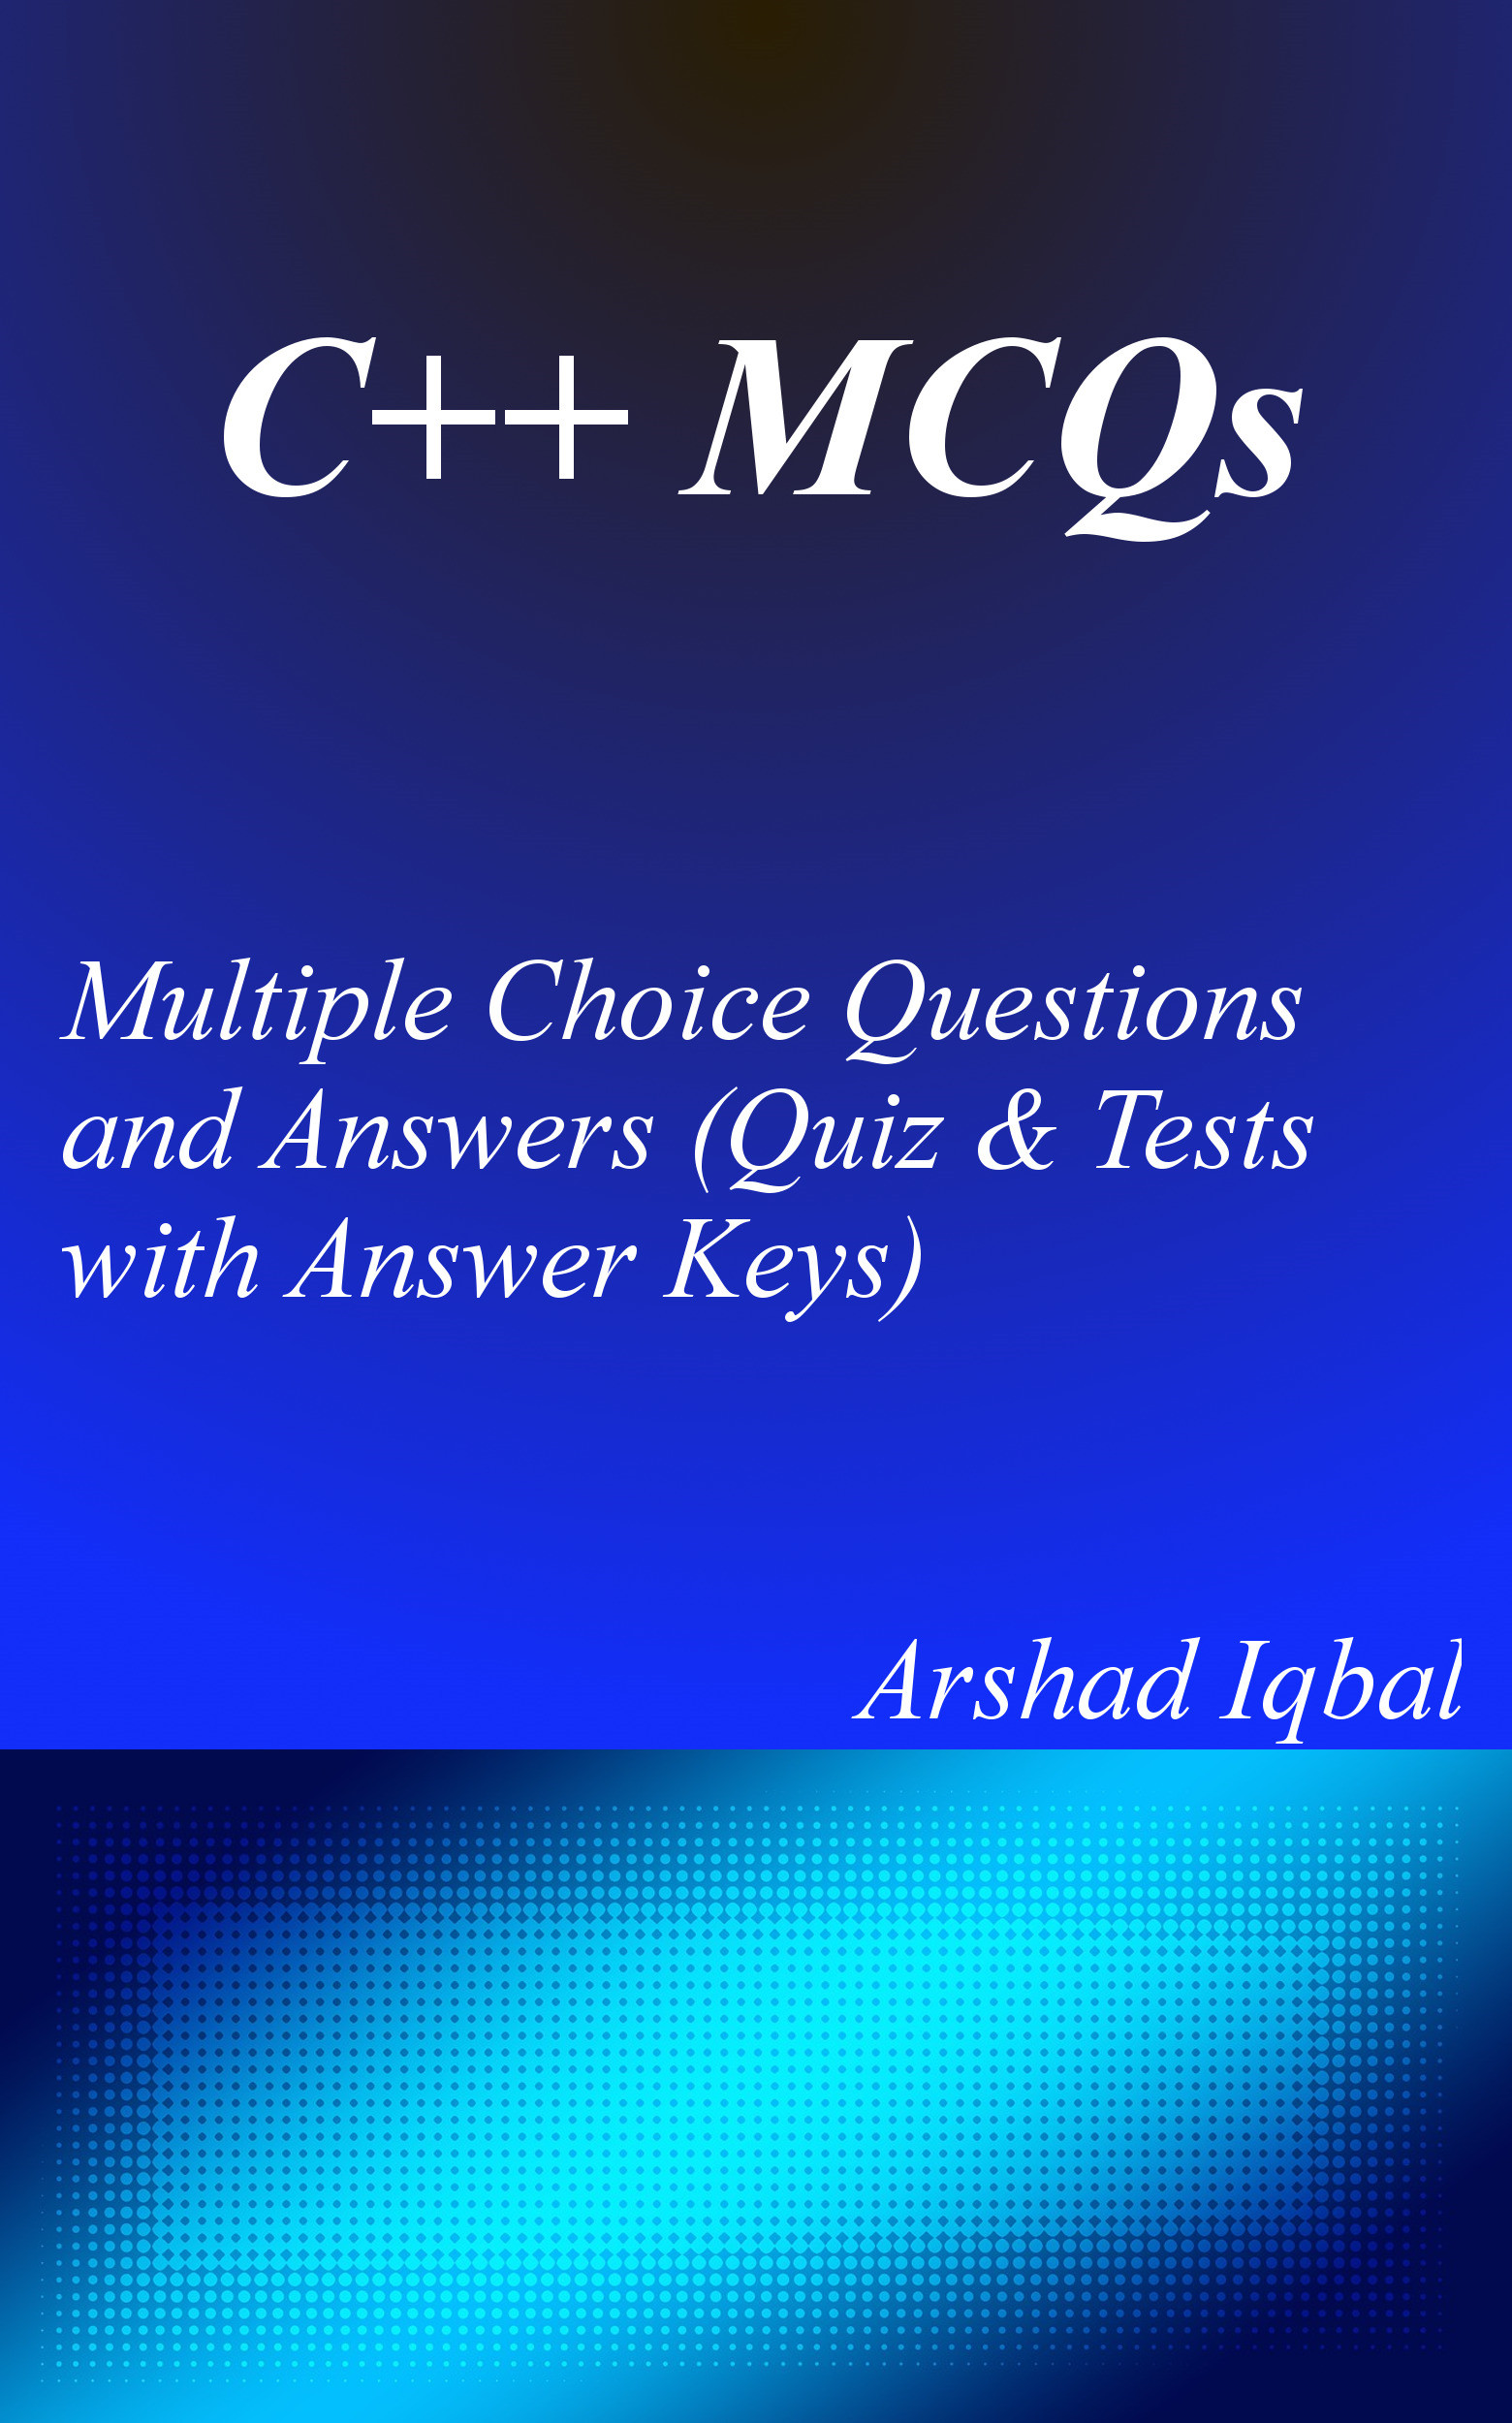 C++ MCQs: Multiple Choice Questions and Answers (Quiz, MCQs & Tests with Answer Keys)